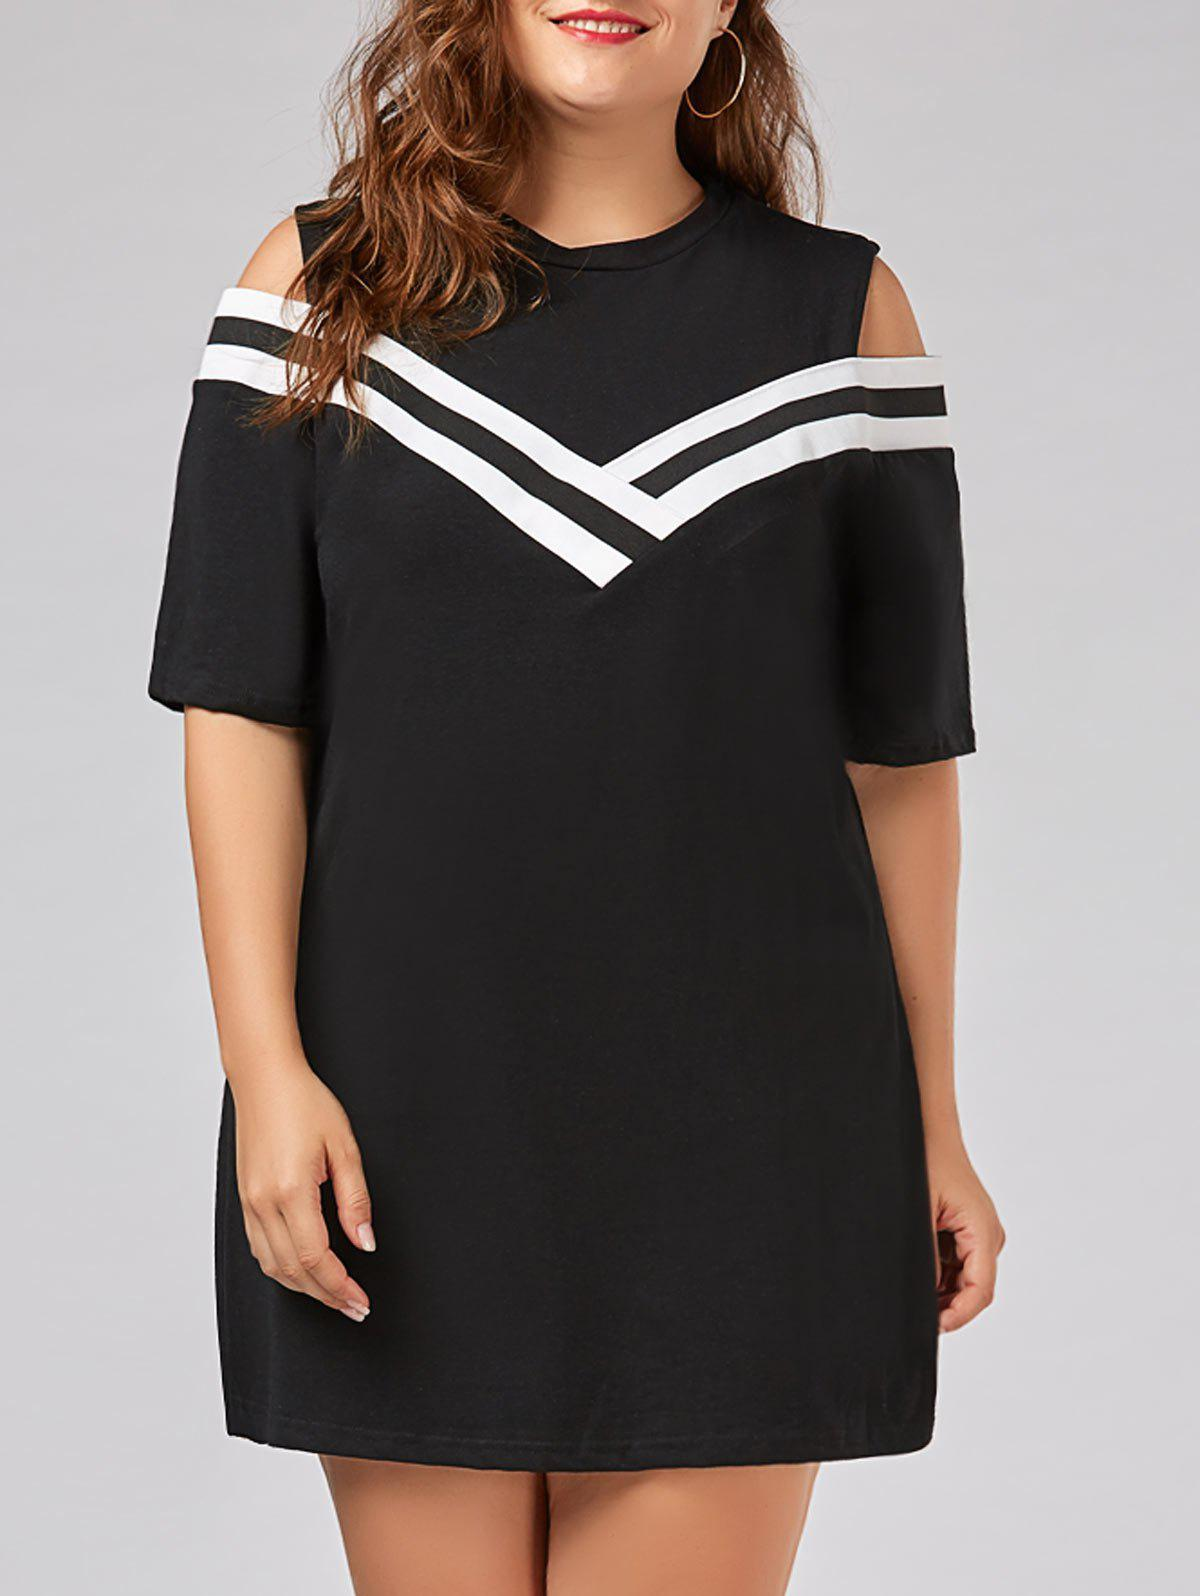 Stripe Panel Plus Size Cold Shoulder T-shirt DressWOMEN<br><br>Size: 5XL; Color: BLACK; Style: Casual; Material: Cotton,Cotton Blend,Polyester; Silhouette: Straight; Dresses Length: Knee-Length; Neckline: Round Collar; Sleeve Type: Cold Shoulder; Sleeve Length: Short Sleeves; Embellishment: Hollow Out; Pattern Type: Others,Striped; With Belt: No; Season: Spring,Summer; Weight: 0.3400kg; Package Contents: 1 x Dress;